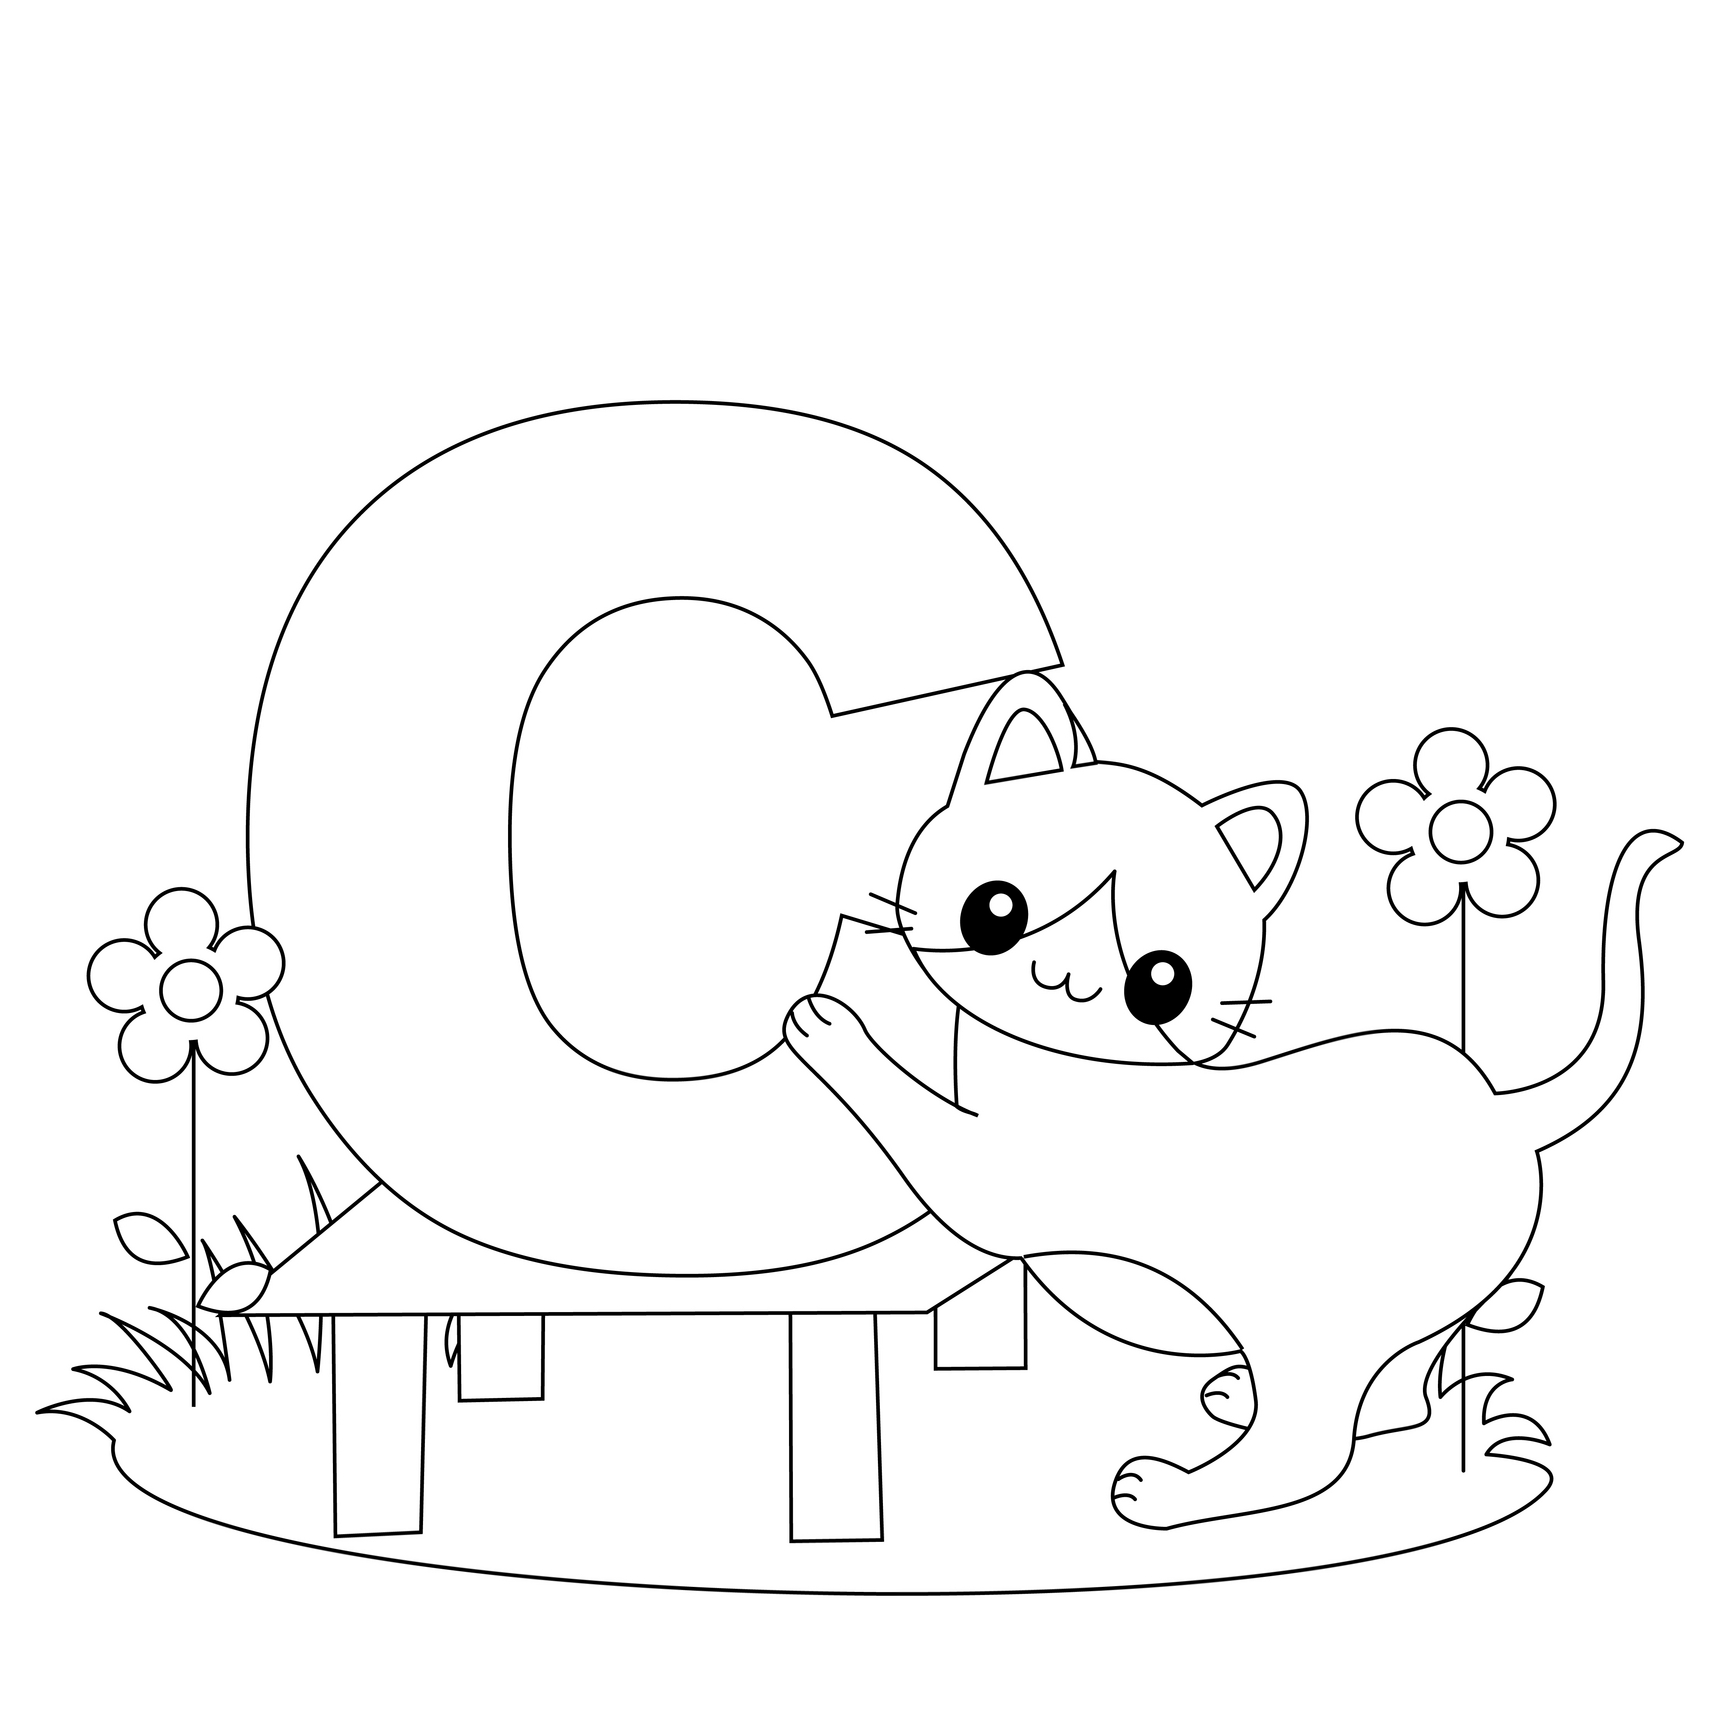 c for coloring page letter c is for cat coloring page free printable for c page coloring